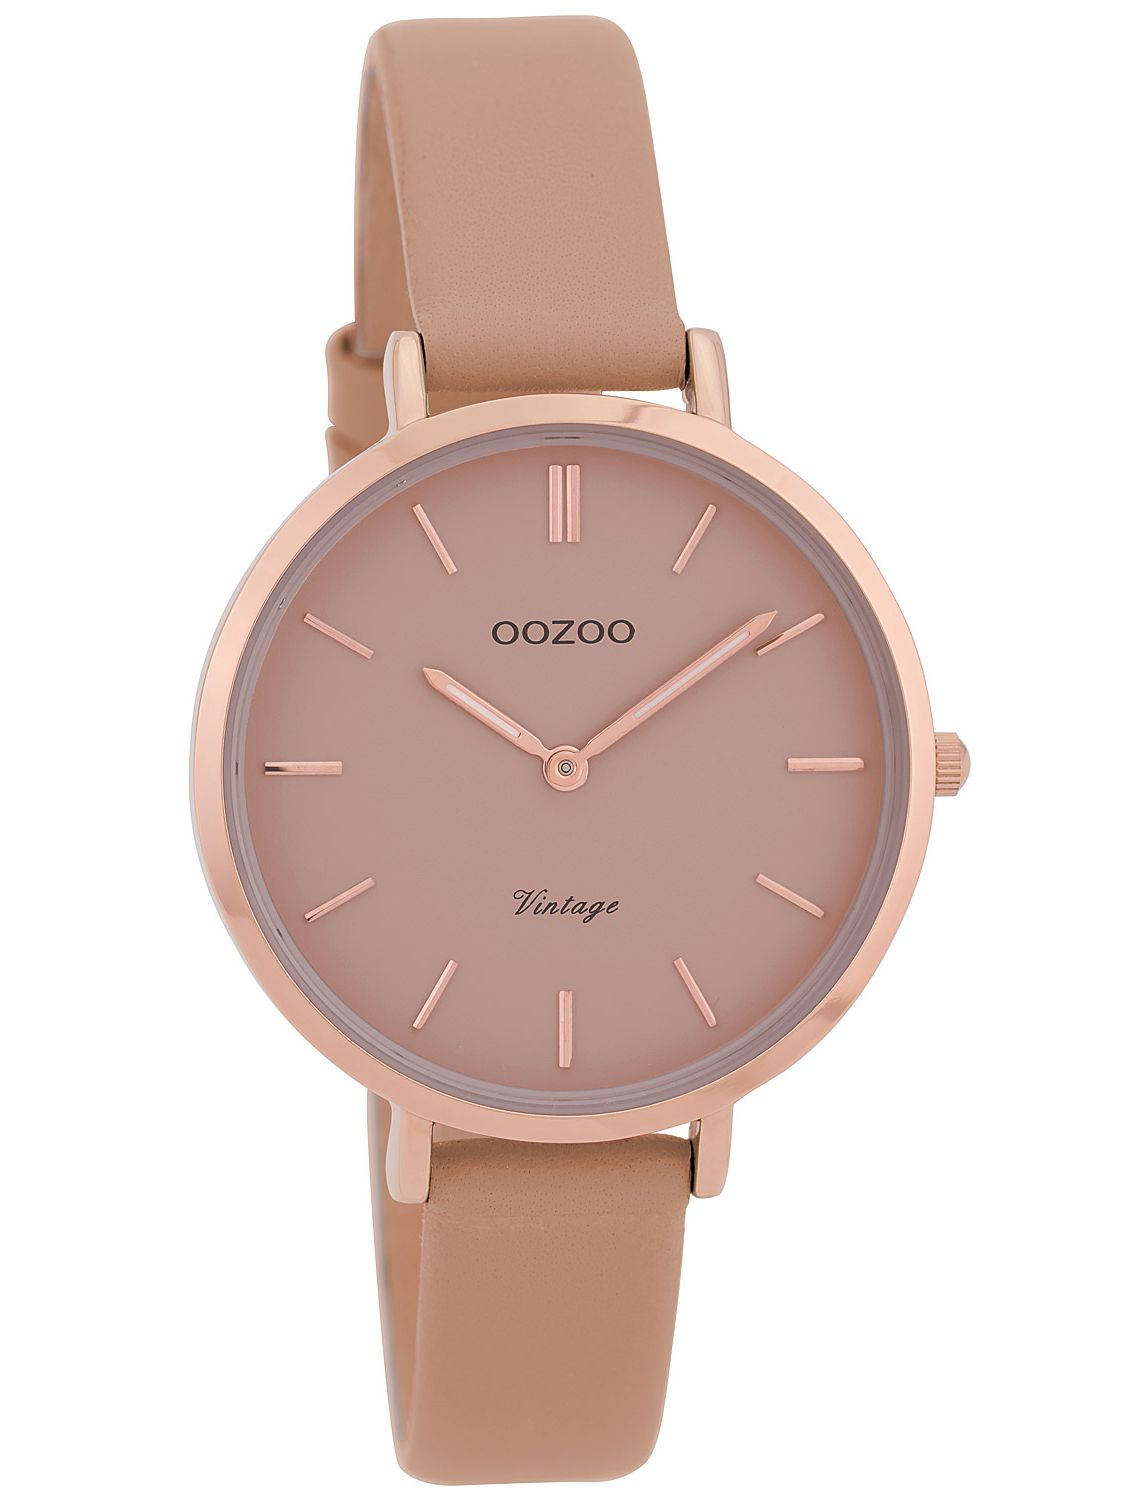 Oozoo Ladies  Watch Vintage Pink-Grey 34 mm with Leather Strap C9811 75b9a9a1edf